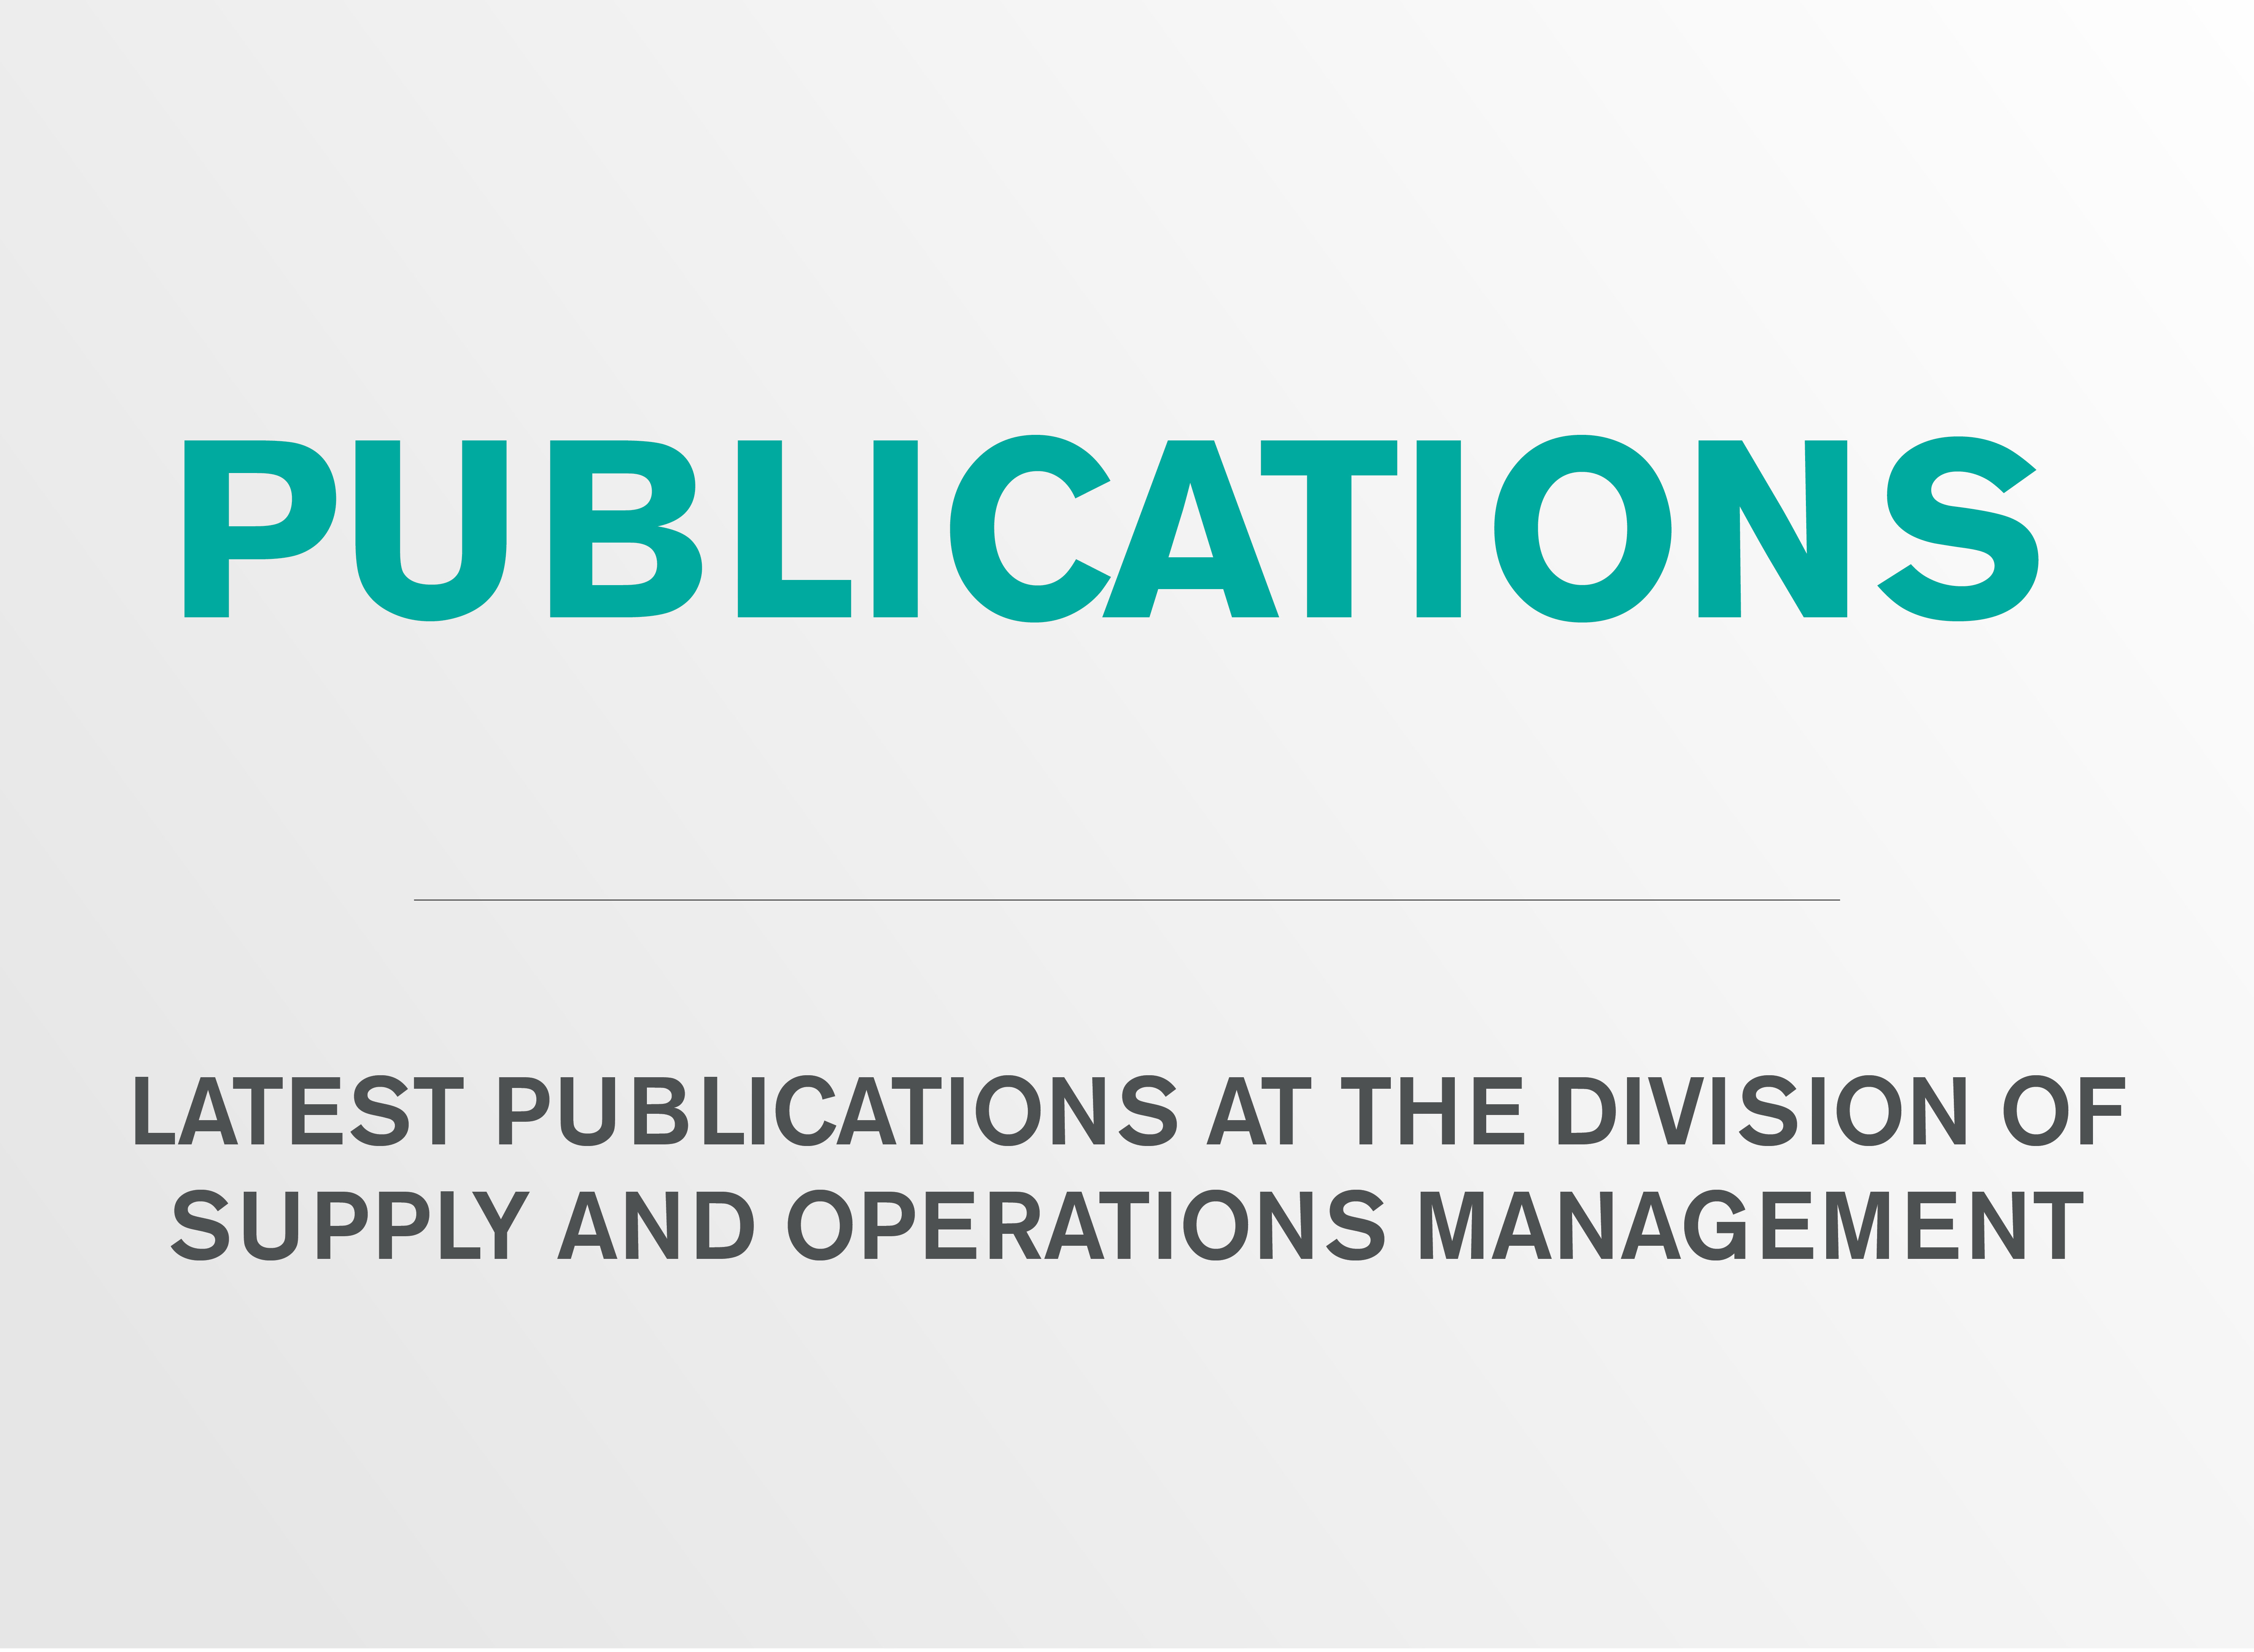 Publications at the division of Supply and Operations Management.